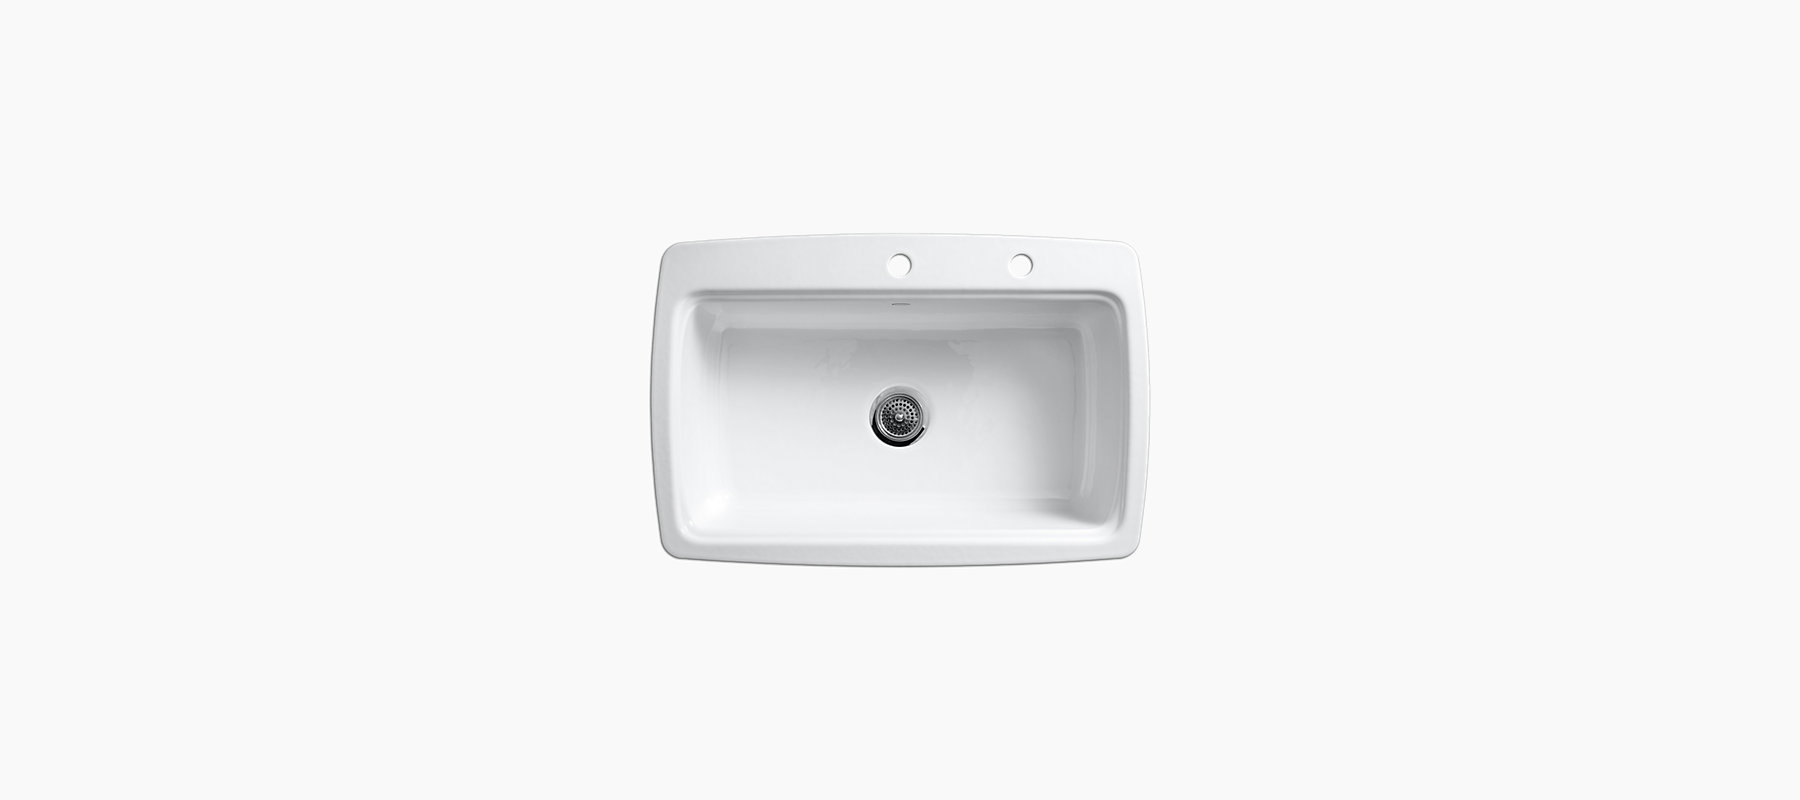 Cape Dory Tile-In Kitchen Sink with Two Faucet Holes | K-5864-2 | KOHLER